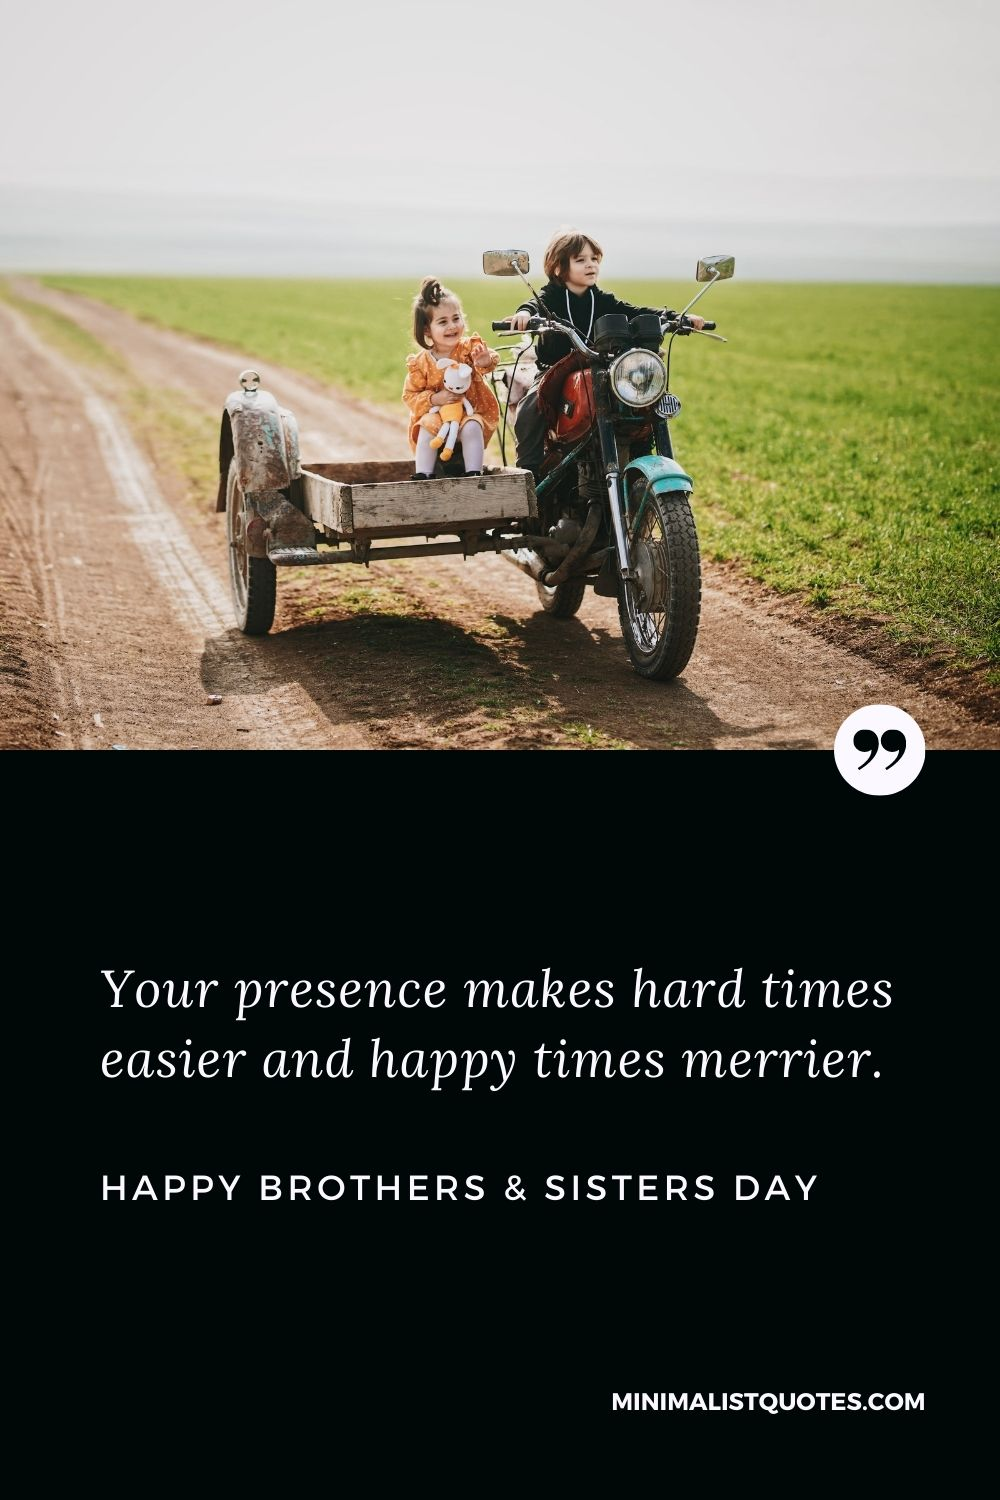 Brother's & Sister's Day Quote, Wish & Message With Image: Your presence makes hard times easier and happy times merrier. Happy Brothers & Sisters Day!